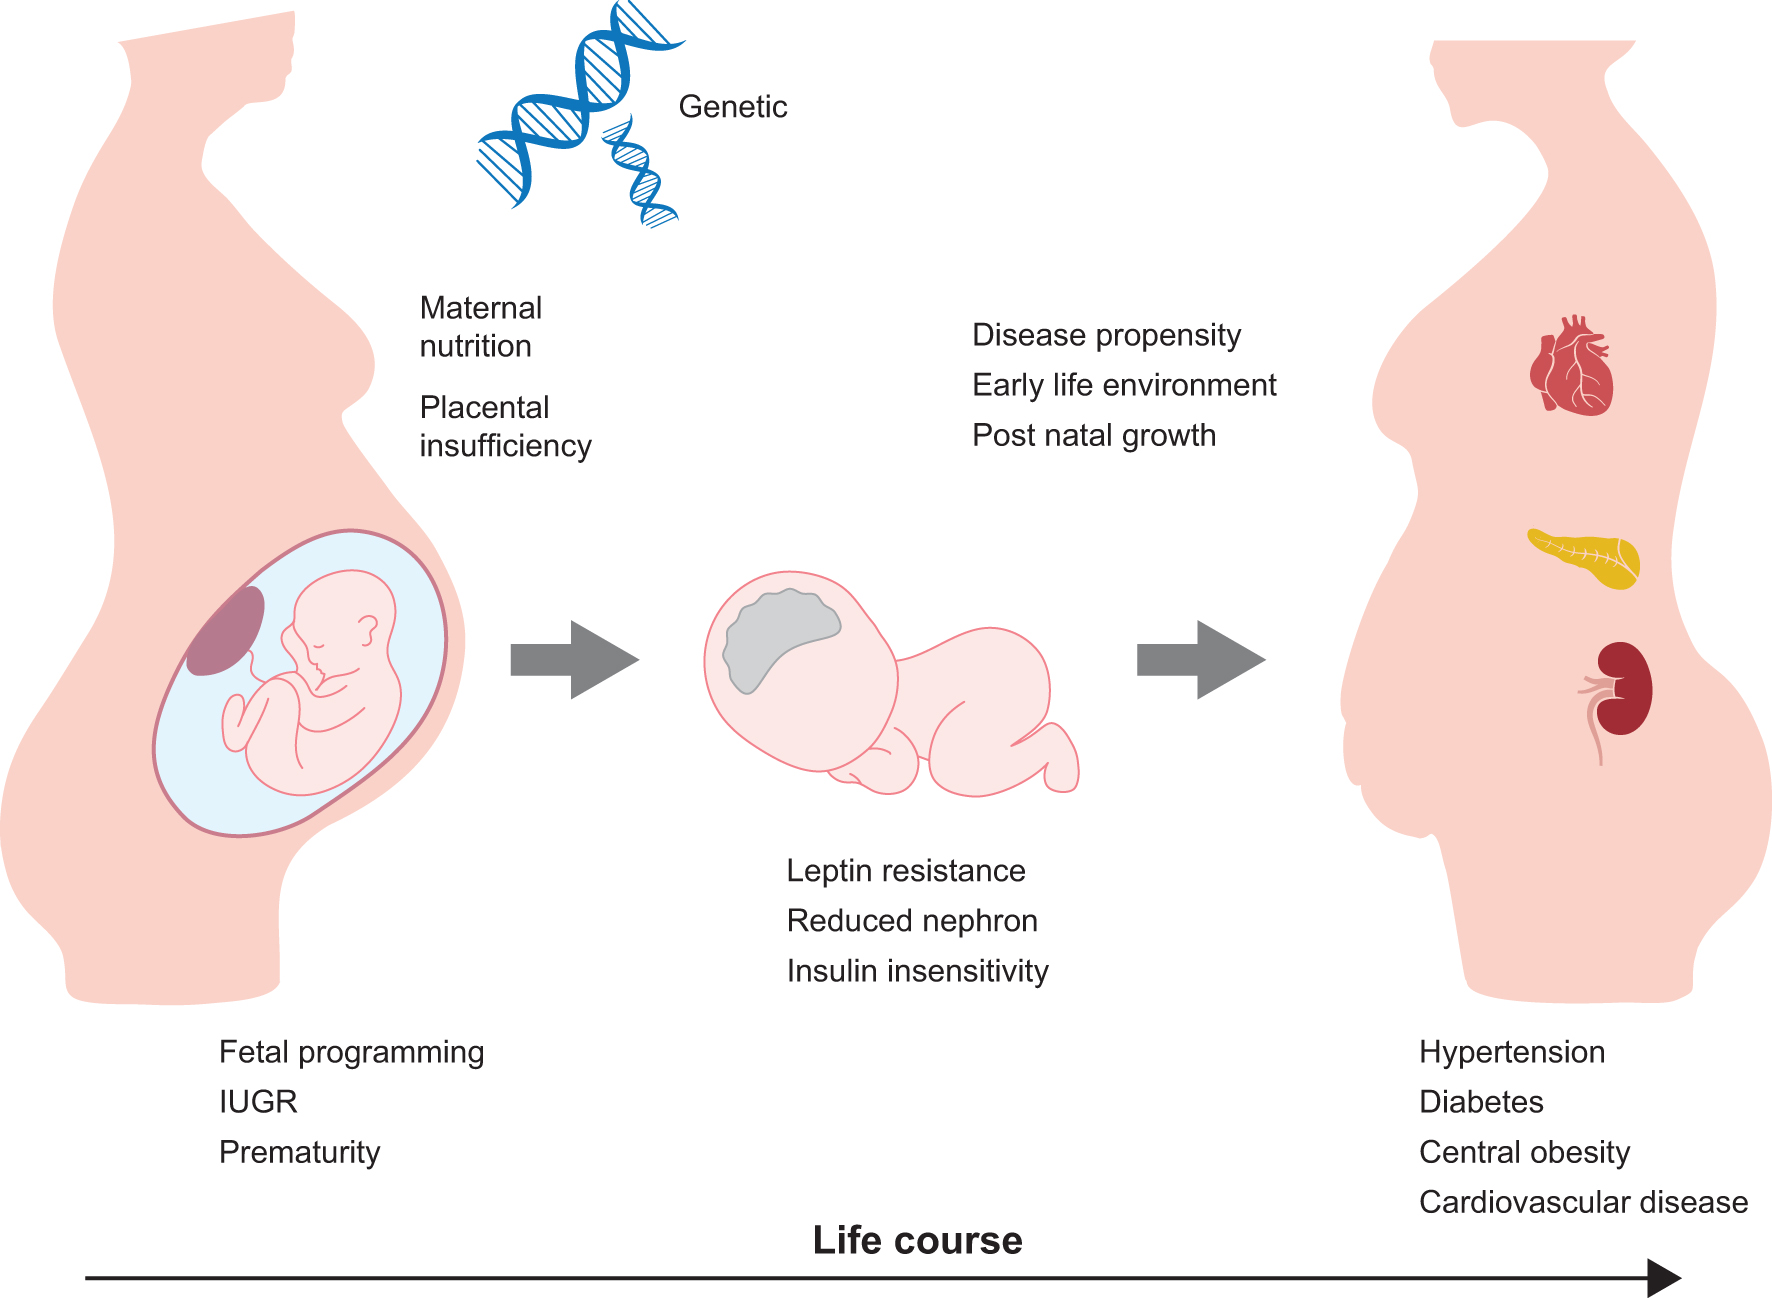 Risk of hypertension following perinatal adversity: IUGR and